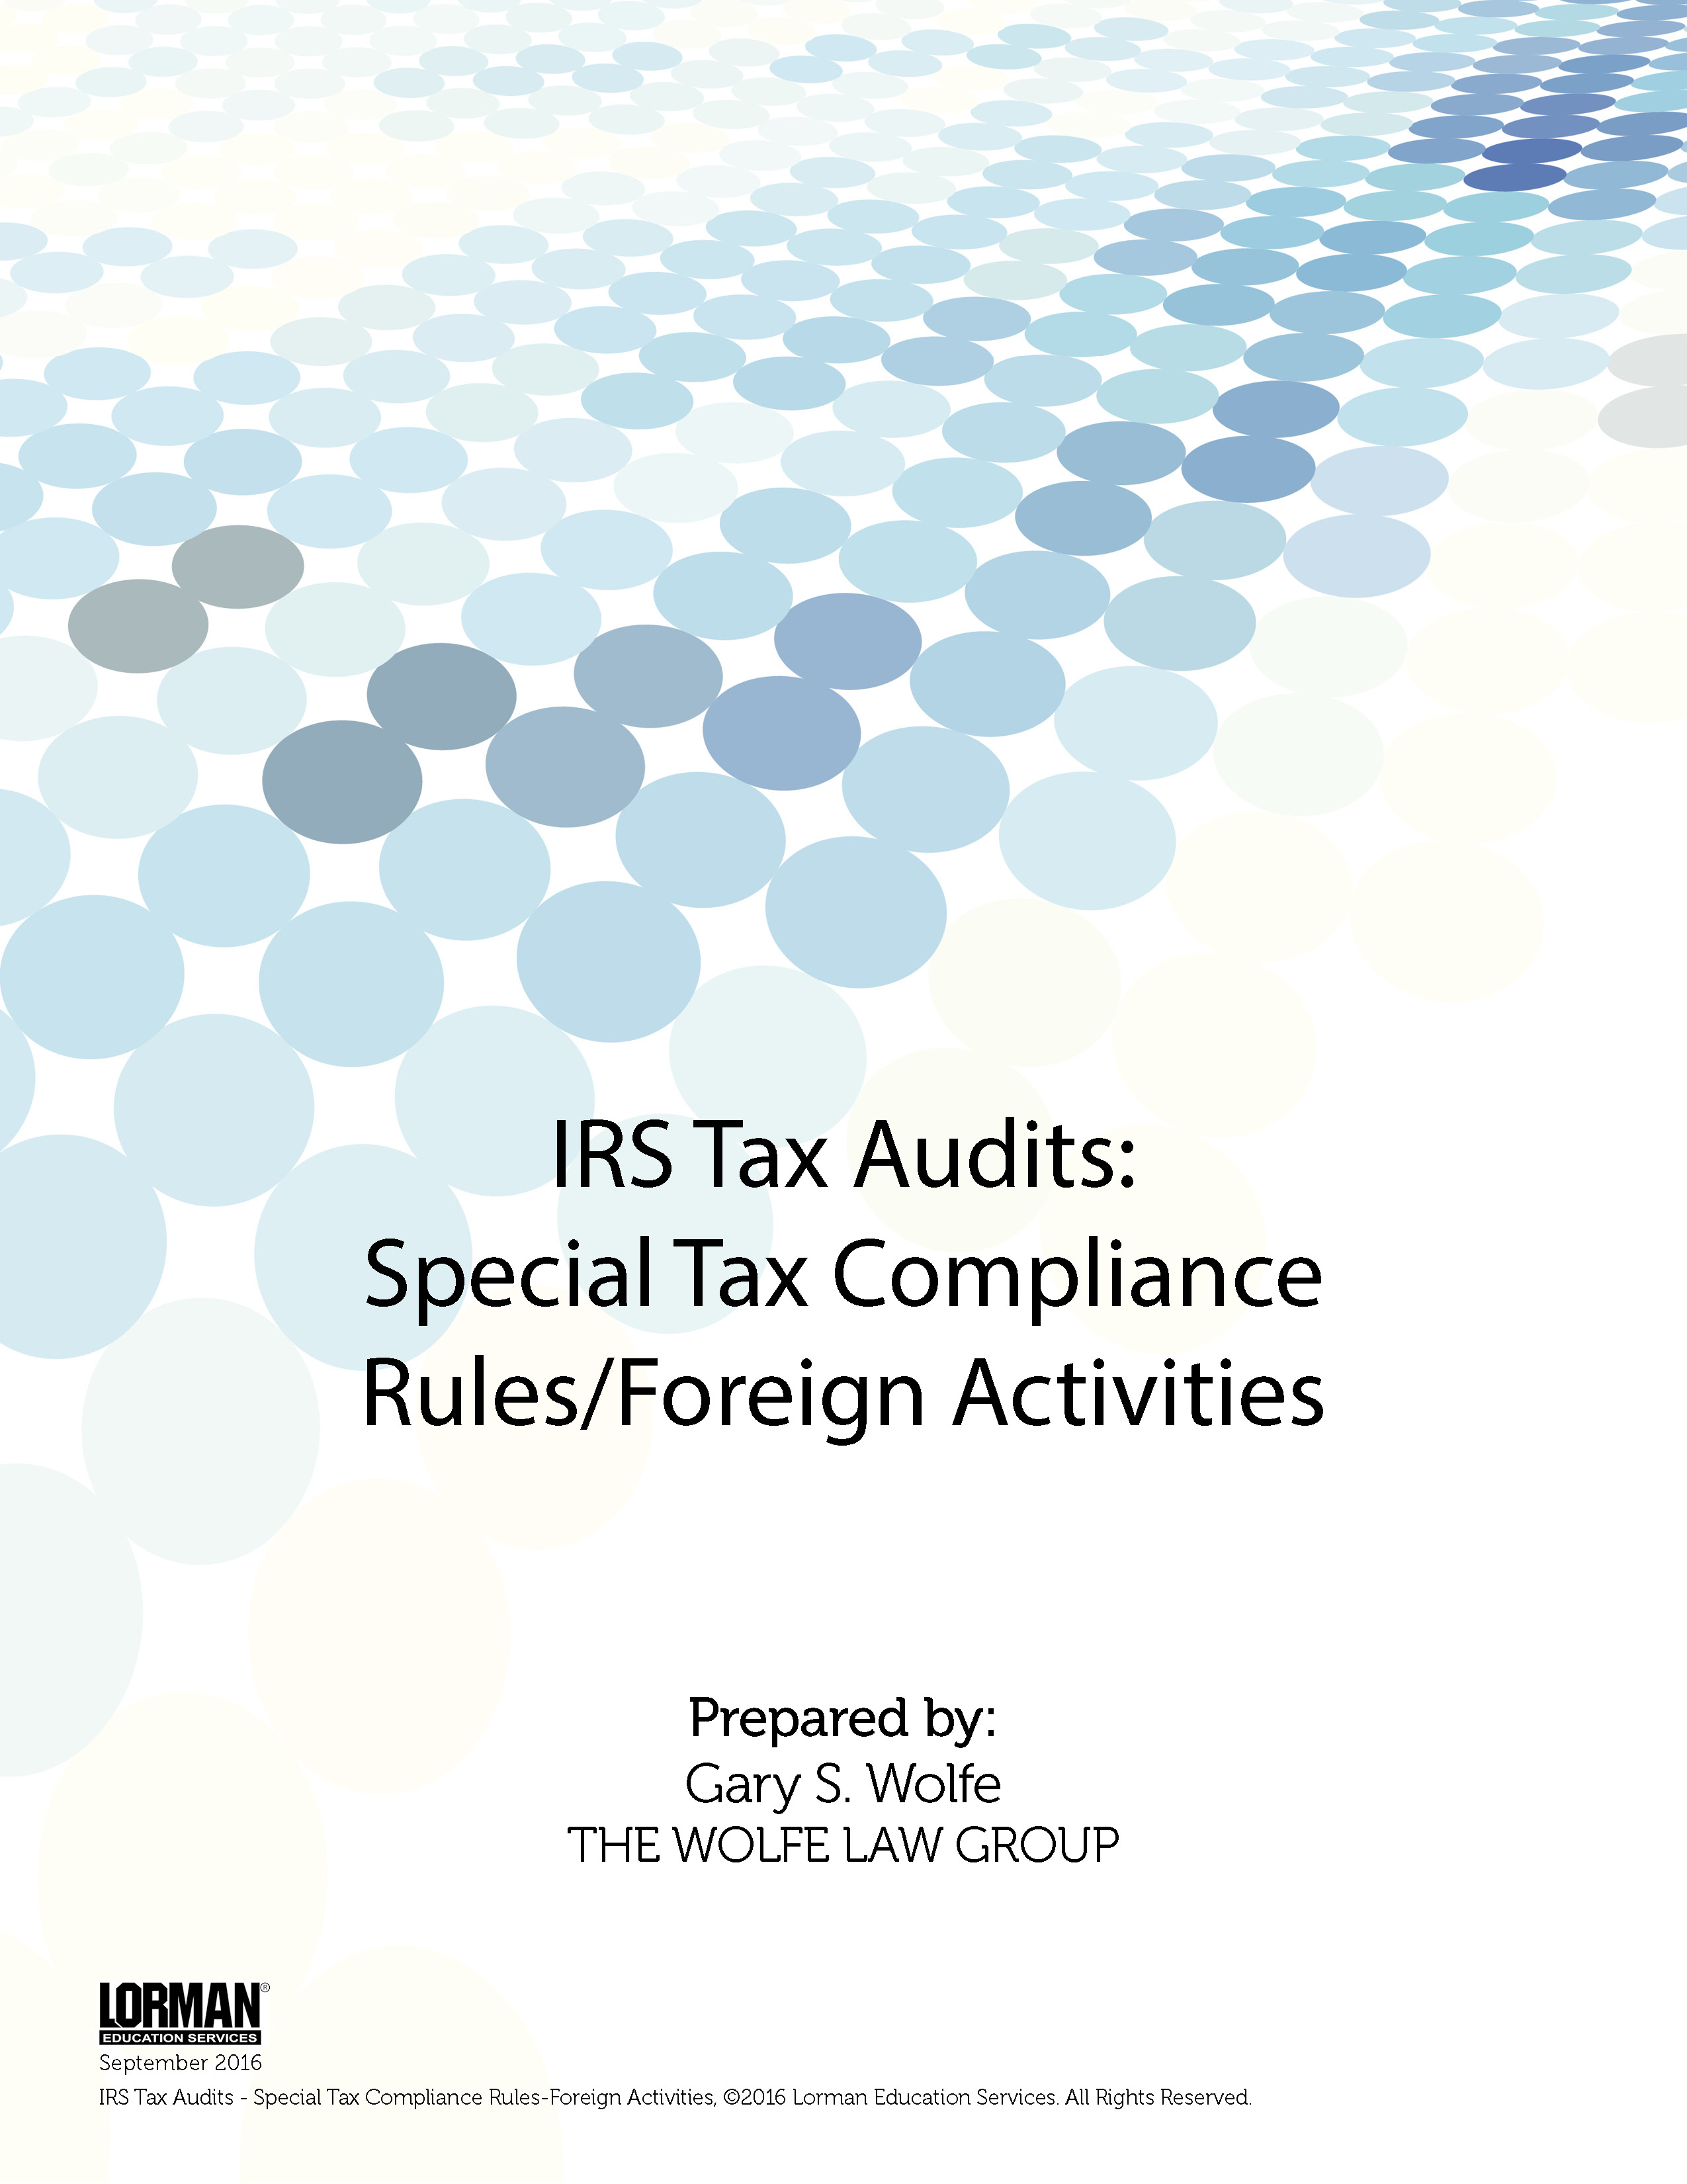 IRS Tax Audits: Special Tax Compliance Rules/Foreign Activities